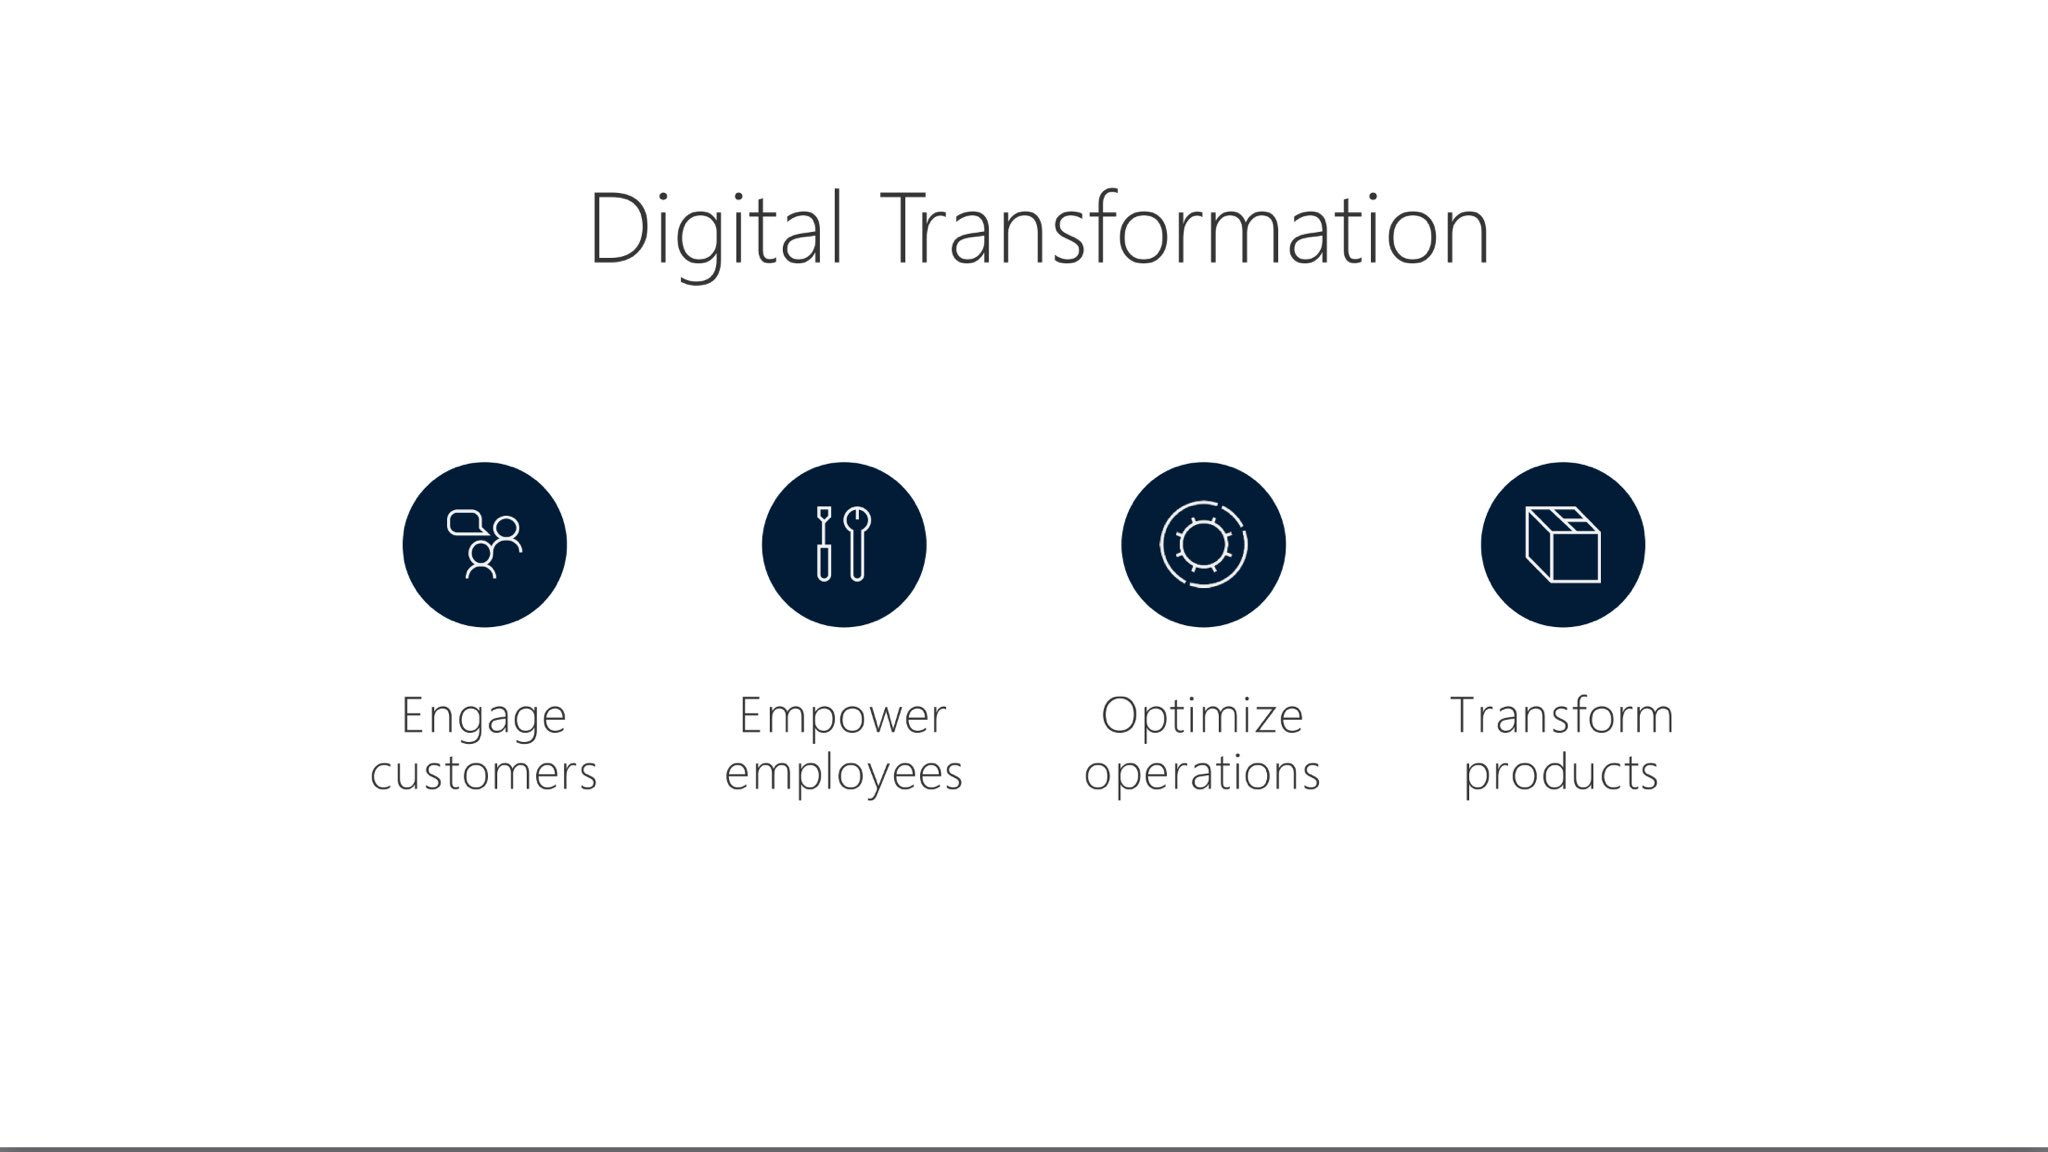 @satyanadella about #digitaltransformation at #MSBusinessFwd - ability to relate information back to your system of record is the challenge https://t.co/1i427TDb1V